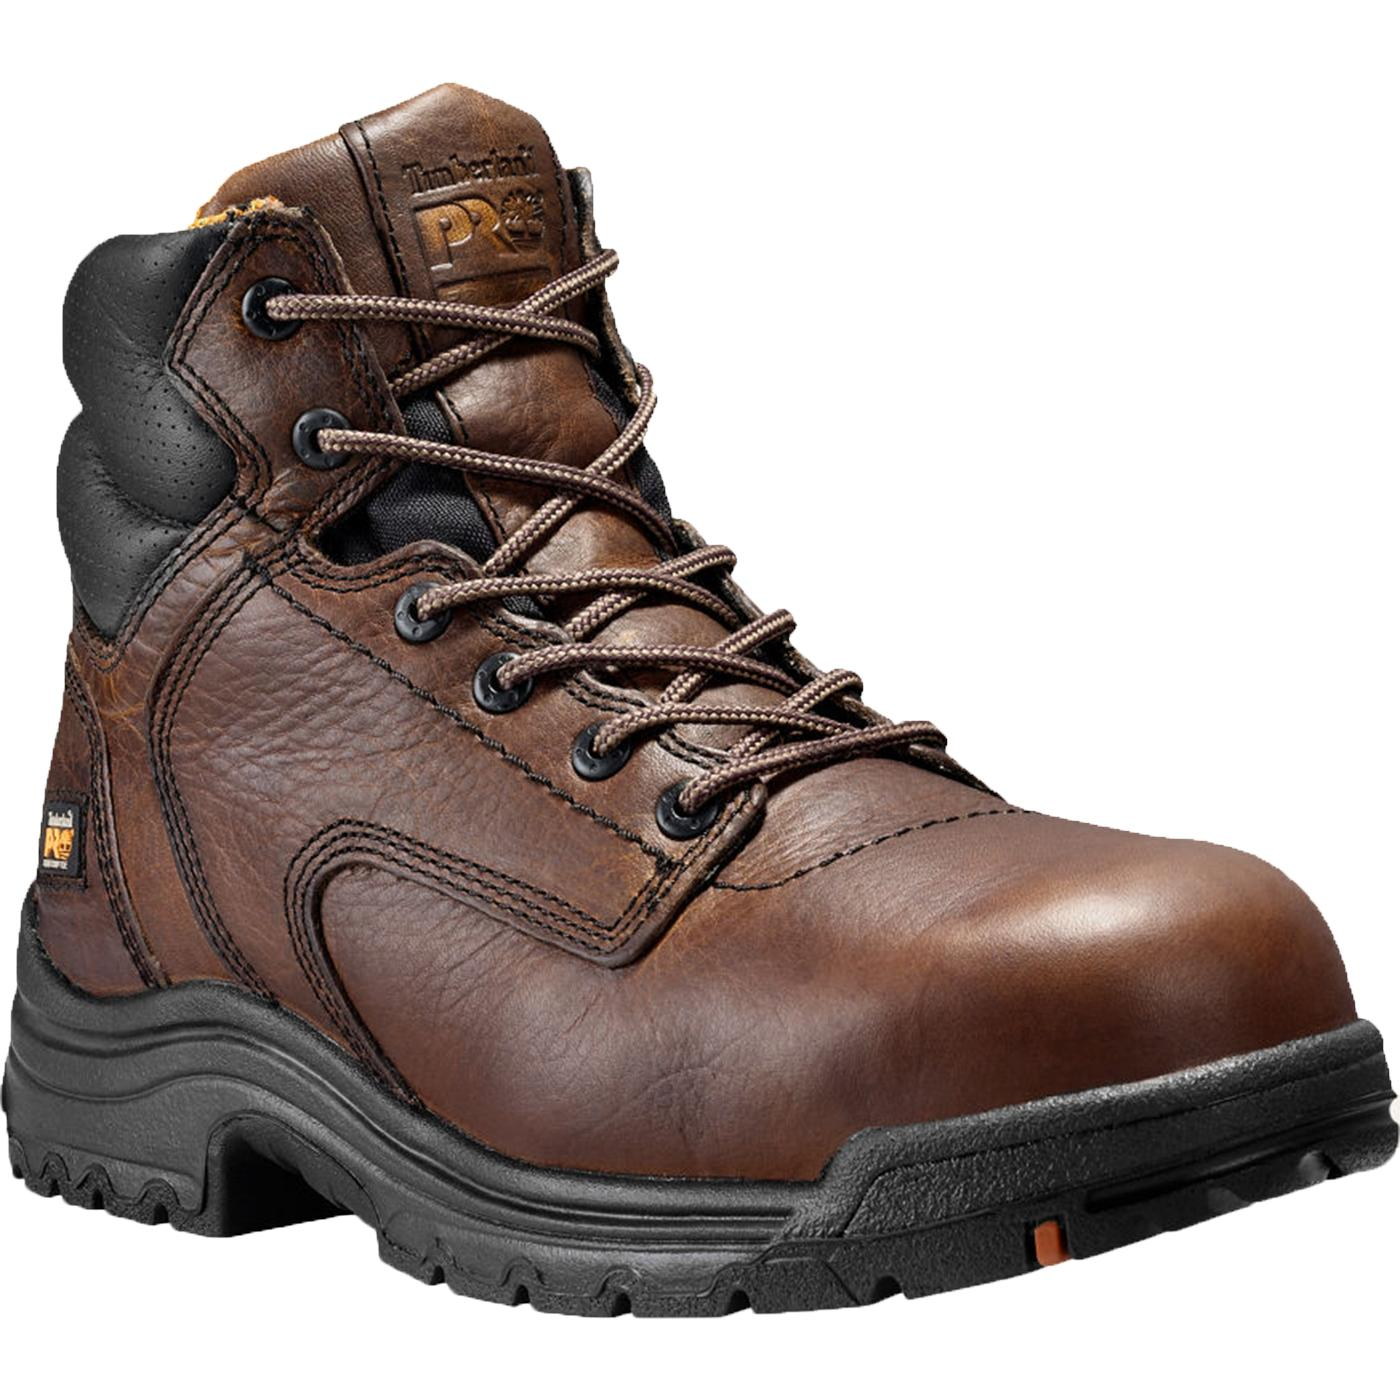 Timberland PRO Titan Men's ... Waterproof Alloy Toe Work Boots discount limited edition sale order clearance latest collections 98sEQH9e